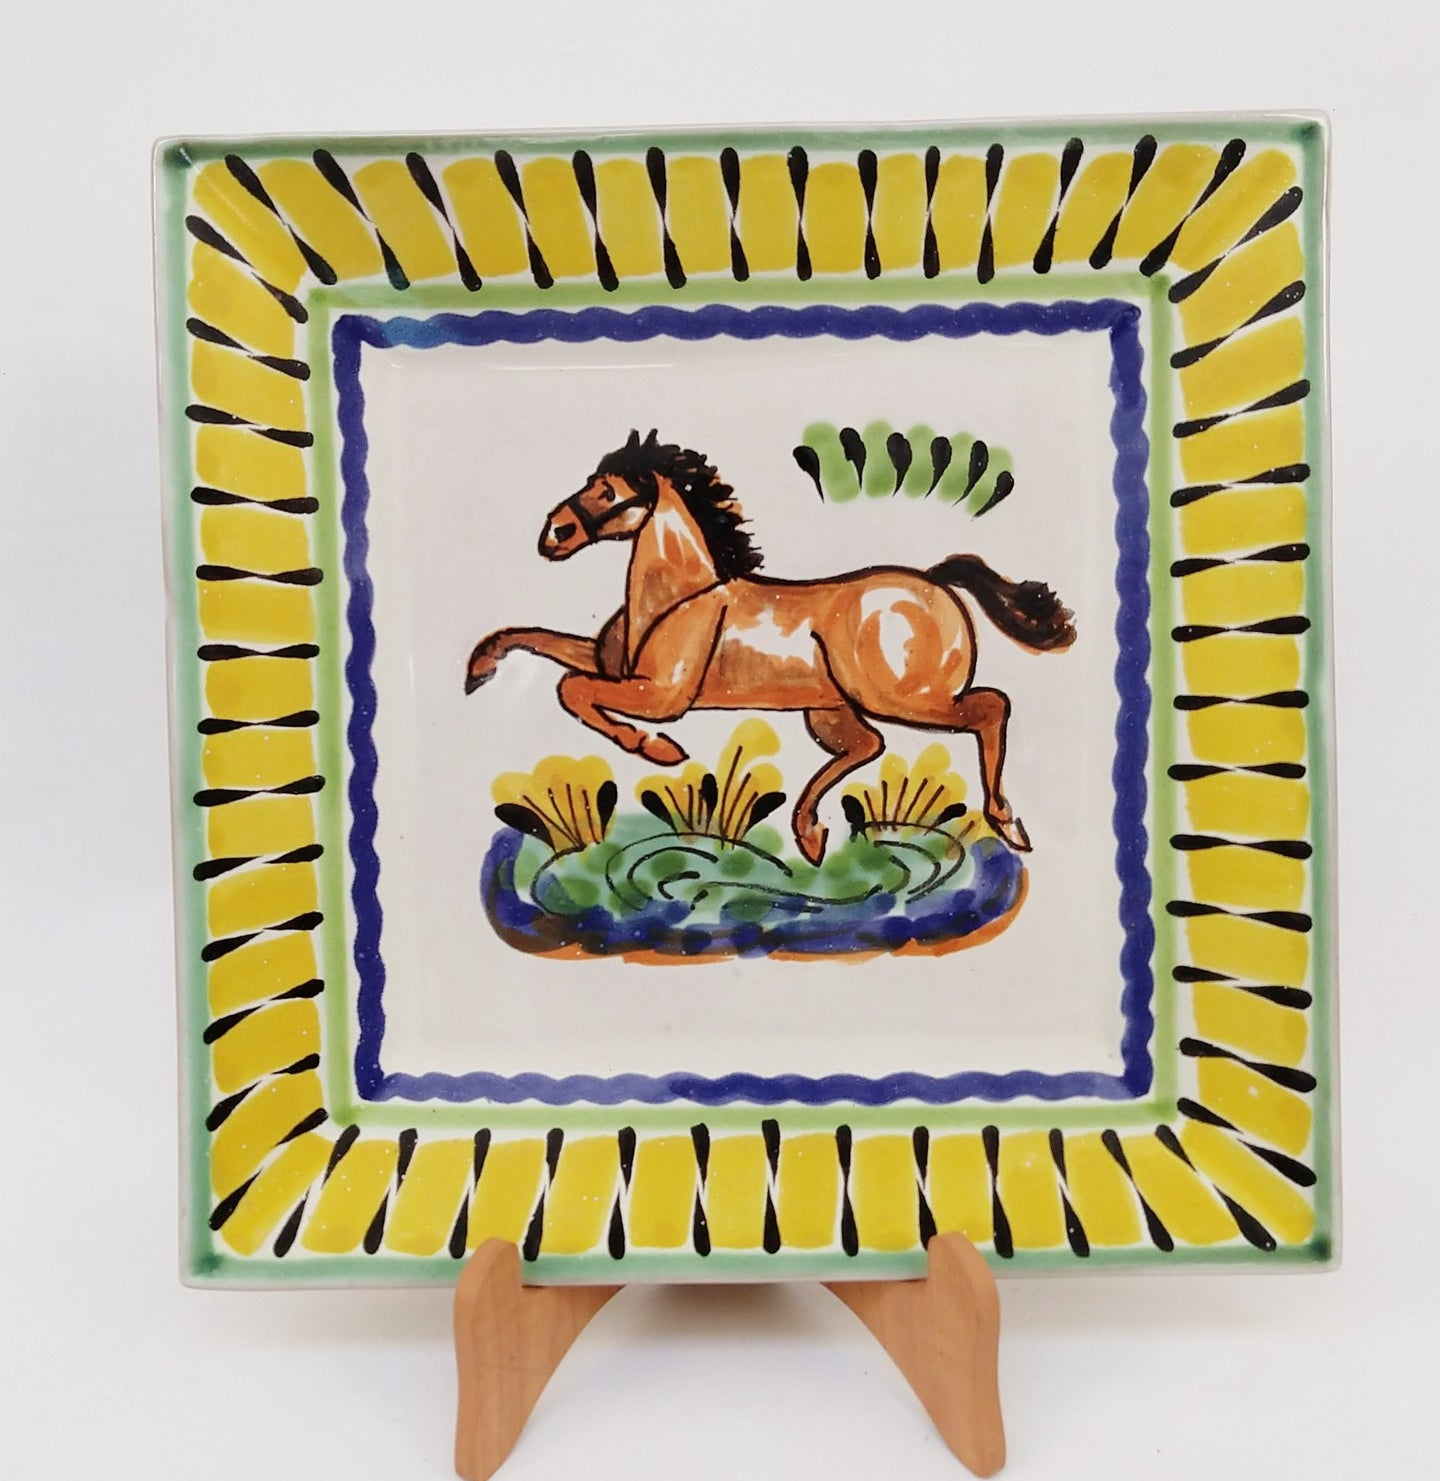 Horse Dinner Square Plate 11x11